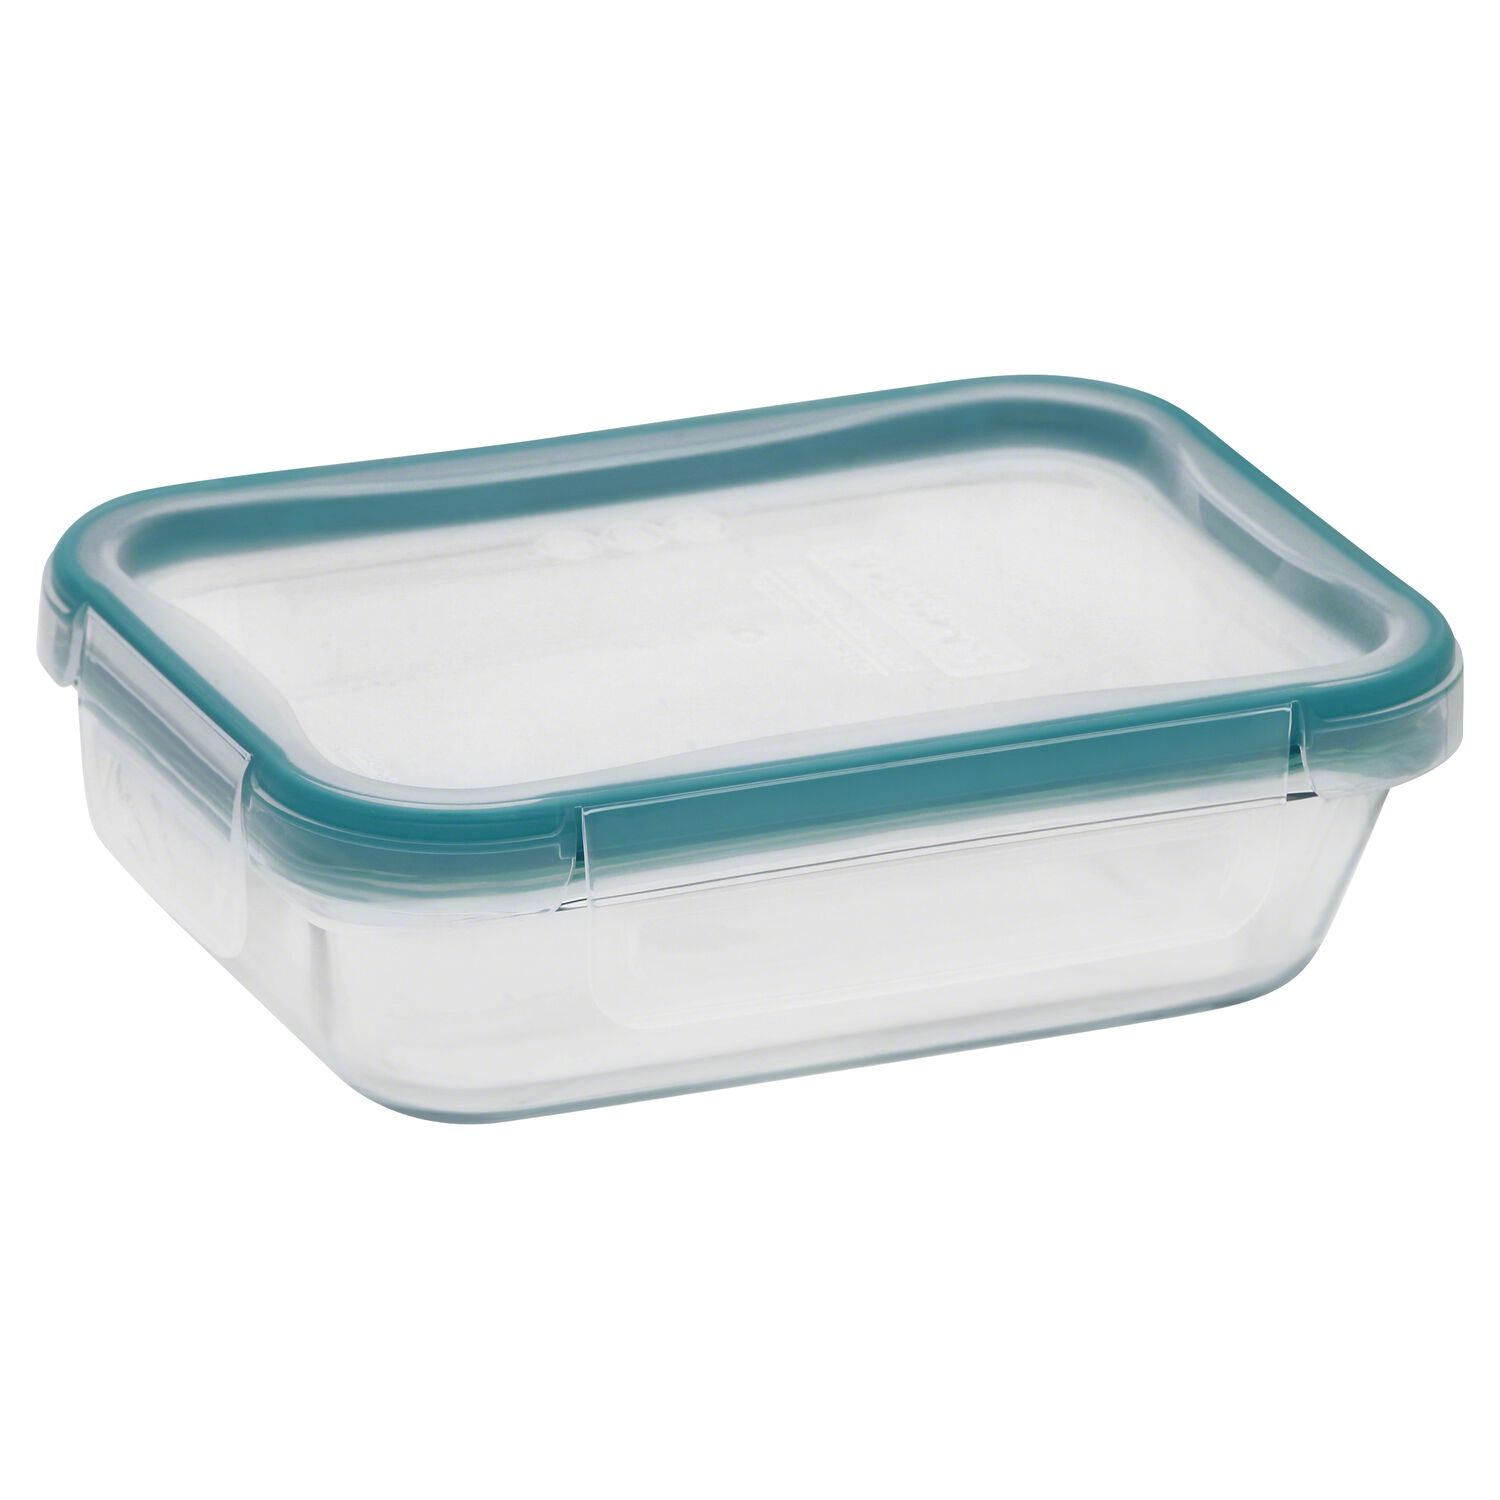 Snapware total solution pyrex glass food storage 2 cup for Glass 2 glass